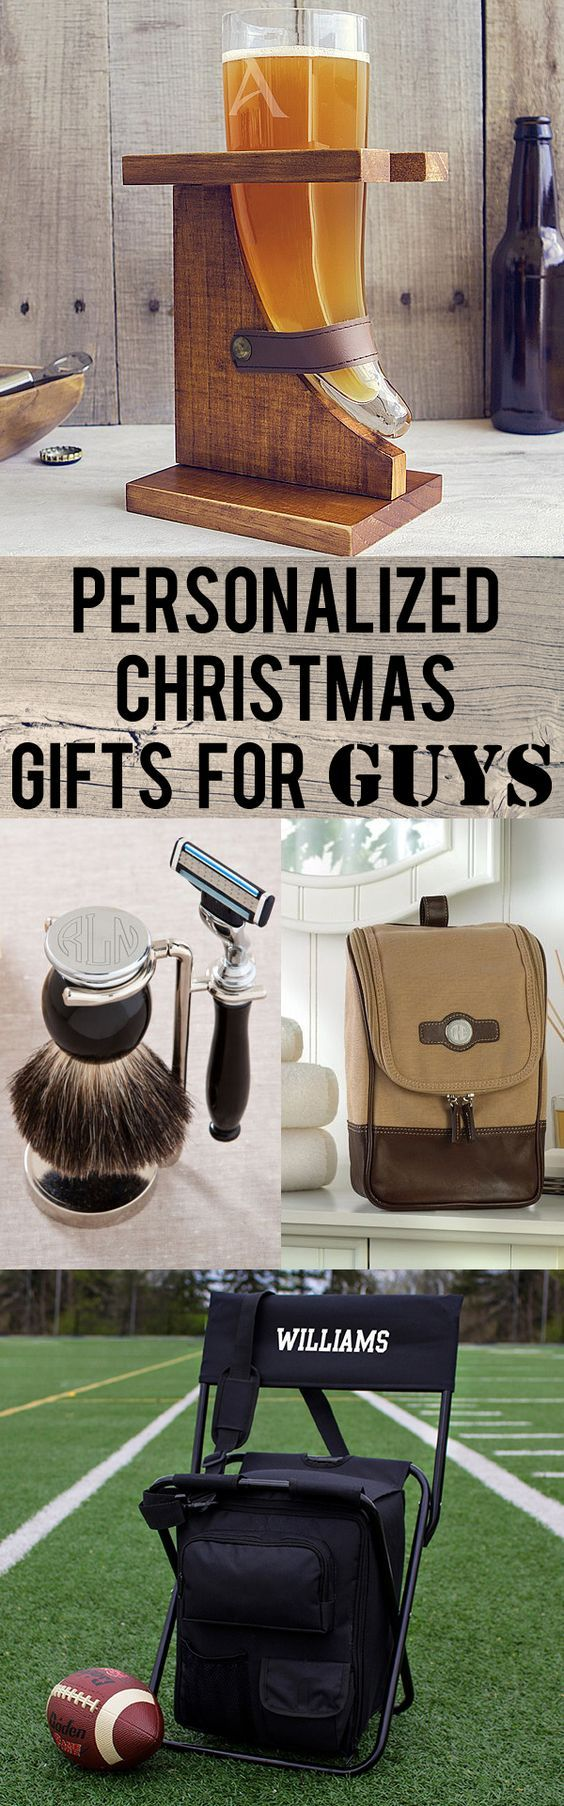 Personalized gift ideas for your husband, dad, boyfriend, brother and men in general that are unique, functional and unforgettable. From engraved Viking beer horns to personalized safety razor and bristle brush shaving sets, these gifts are sure to surprise and to please. These gifts can be ordered at https://myweddingreceptionideas.com/personalized_holiday_gifts_for_guys.asp